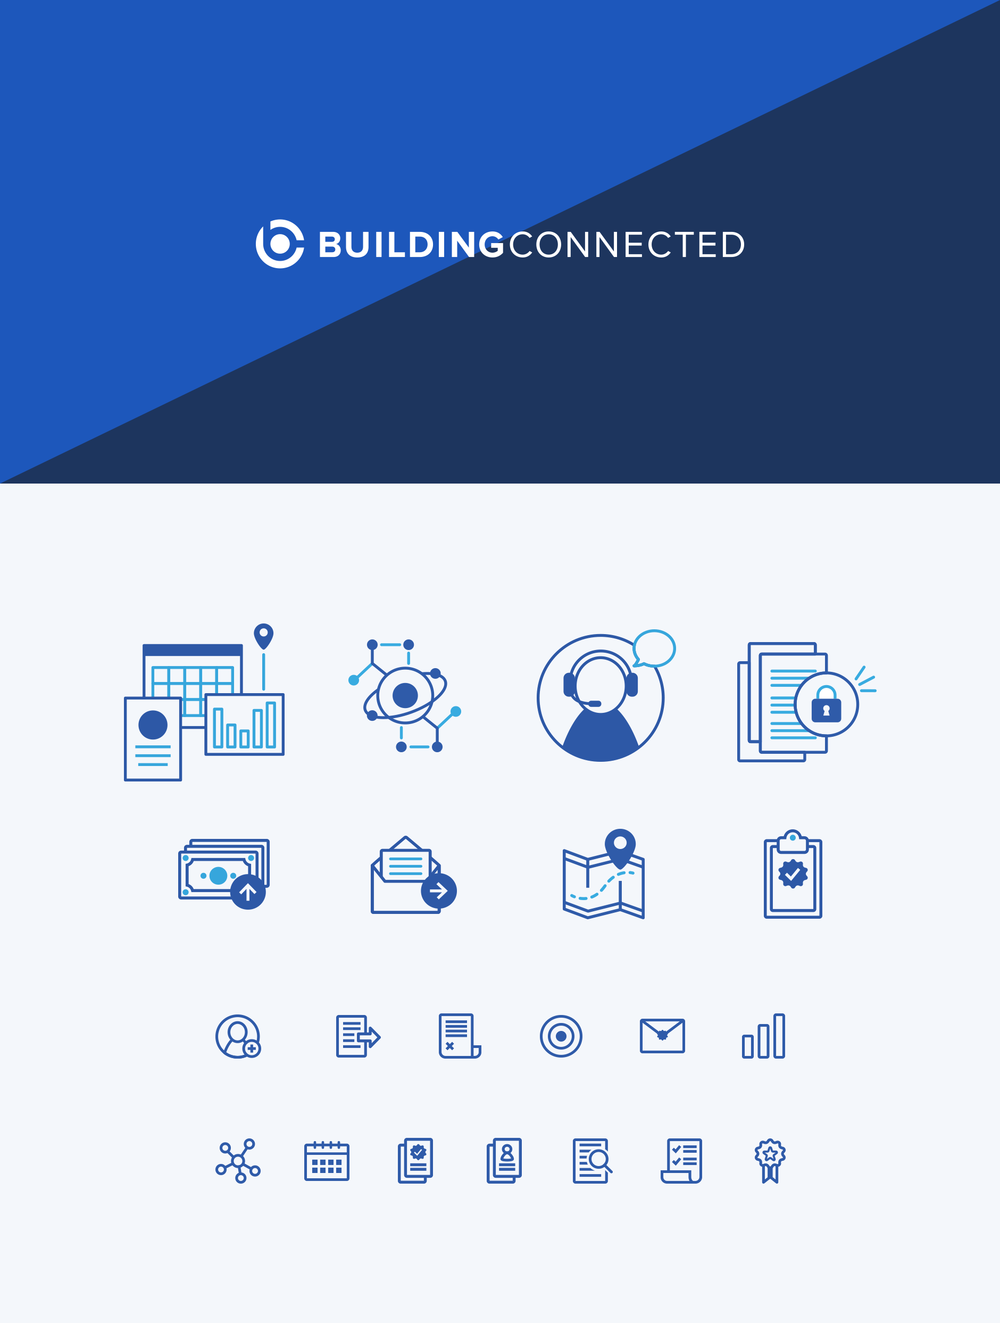 Salazar_BuildingConnected_Logo-Illlo-icon-allblue.png